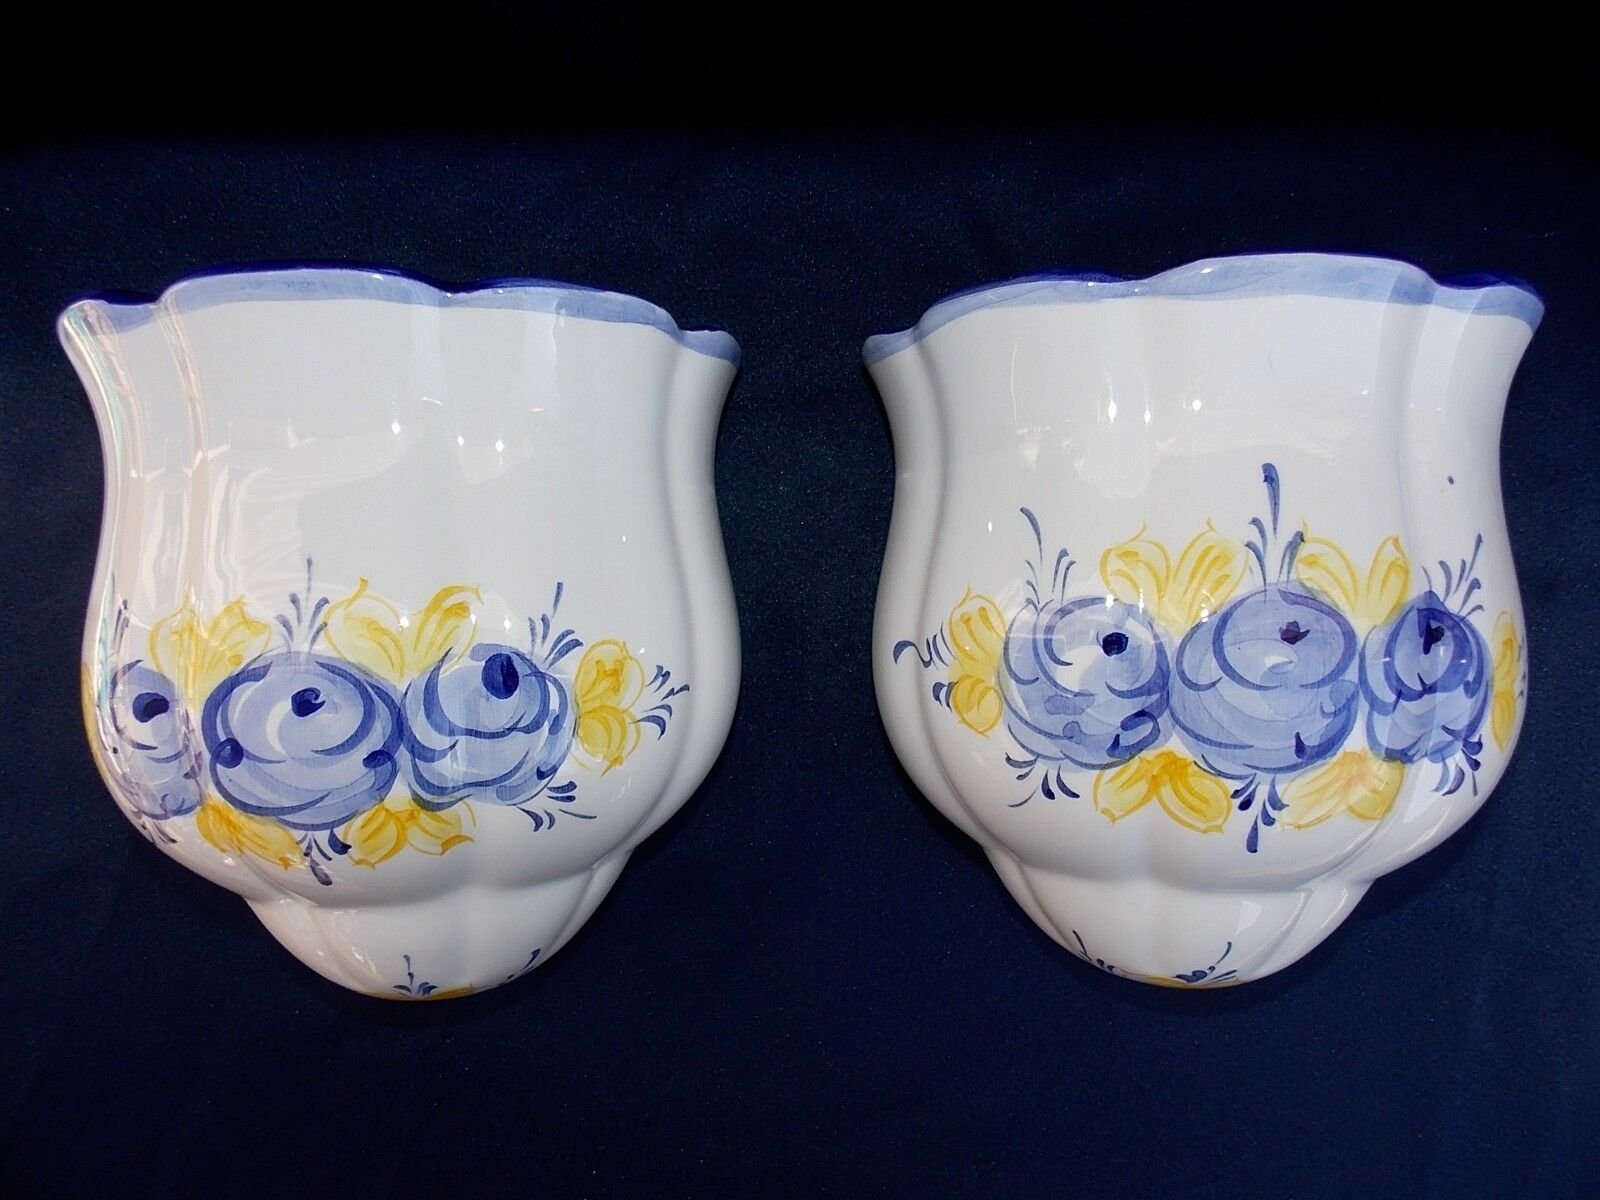 Pair hand paintedceramicwall pocketsvaseswhitebluevestal 1 of 11 see more reviewsmspy